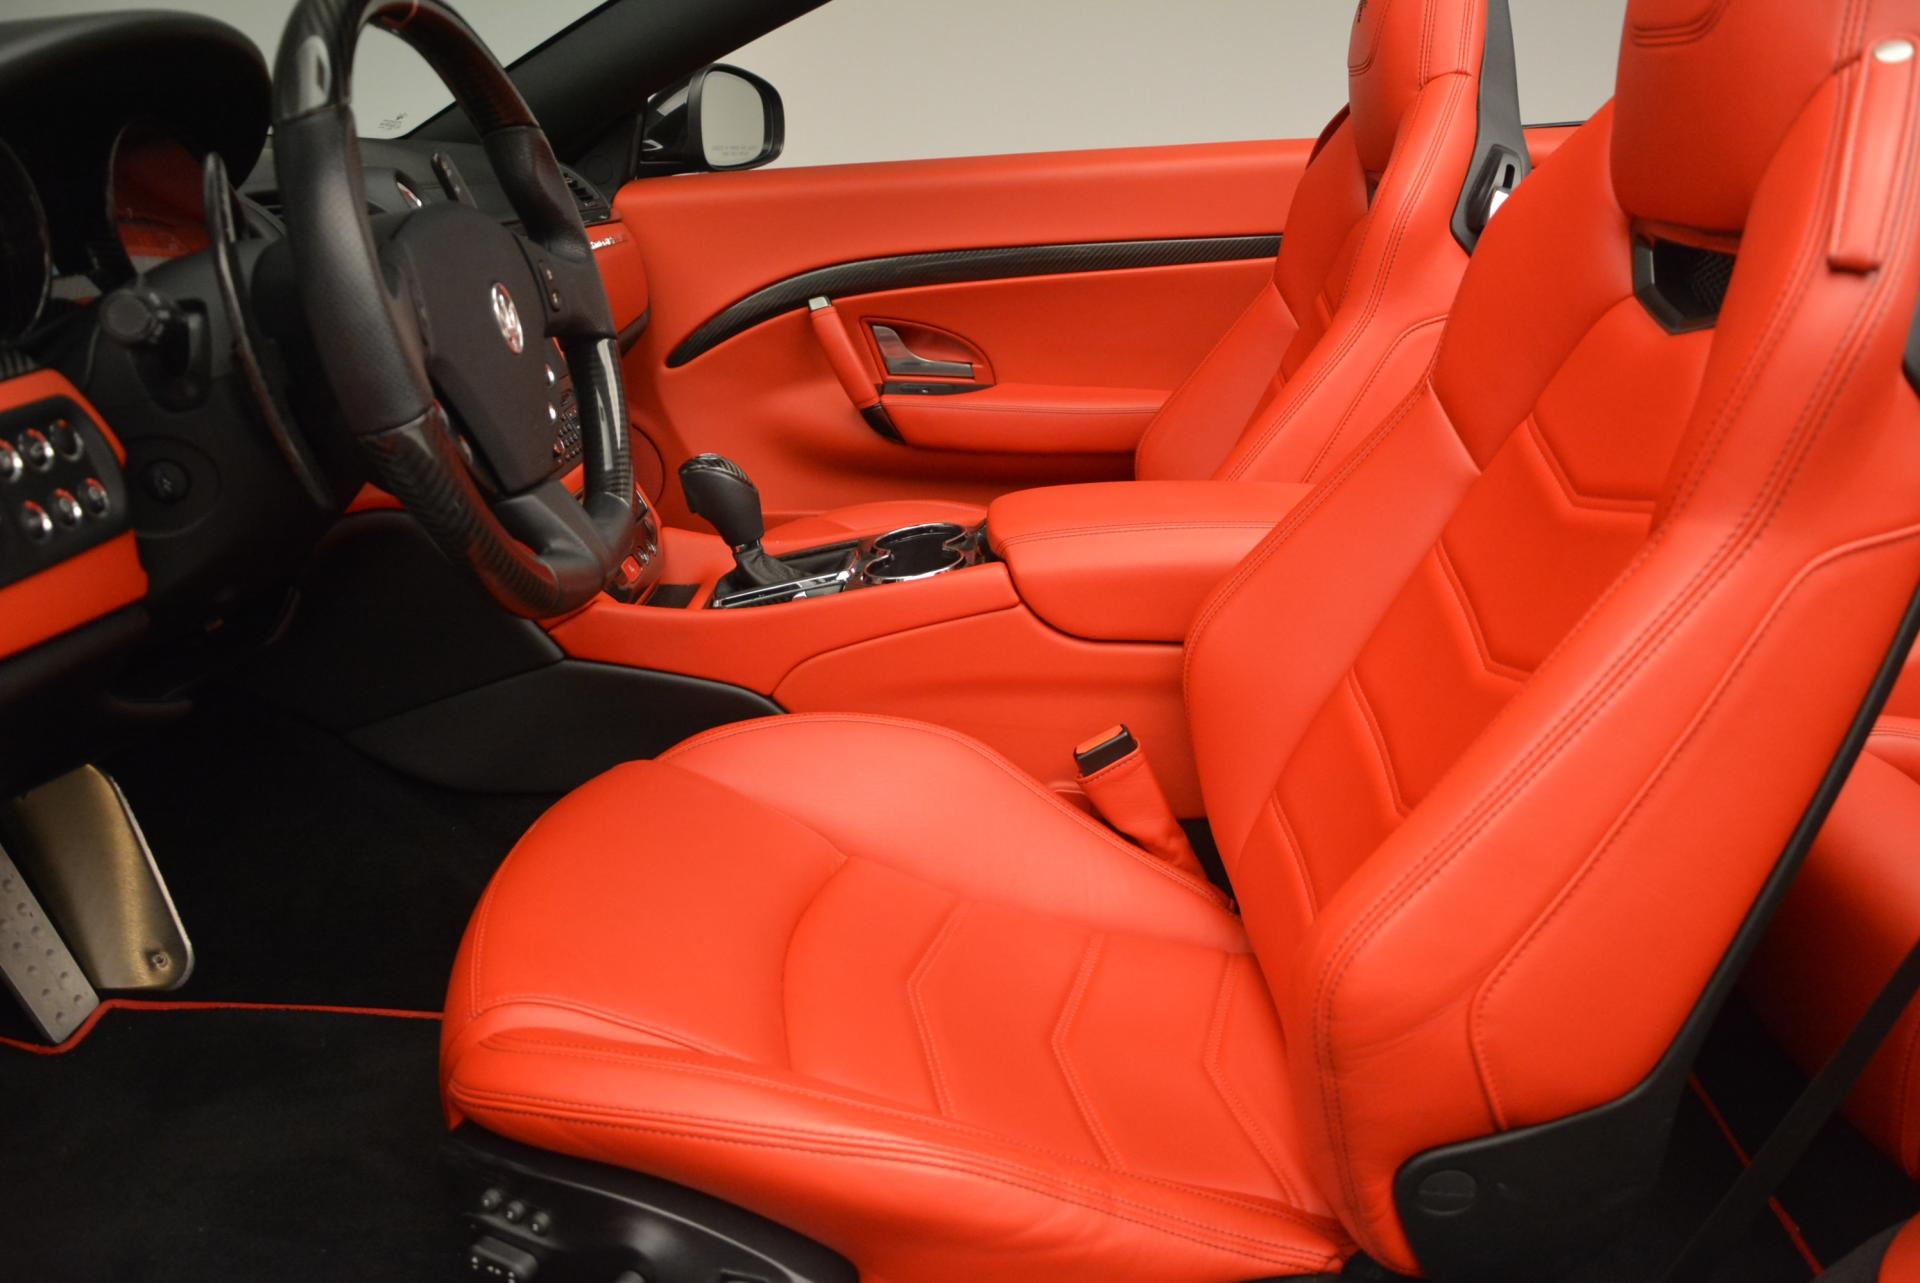 Used 2013 Maserati GranTurismo MC For Sale In Westport, CT 521_p23